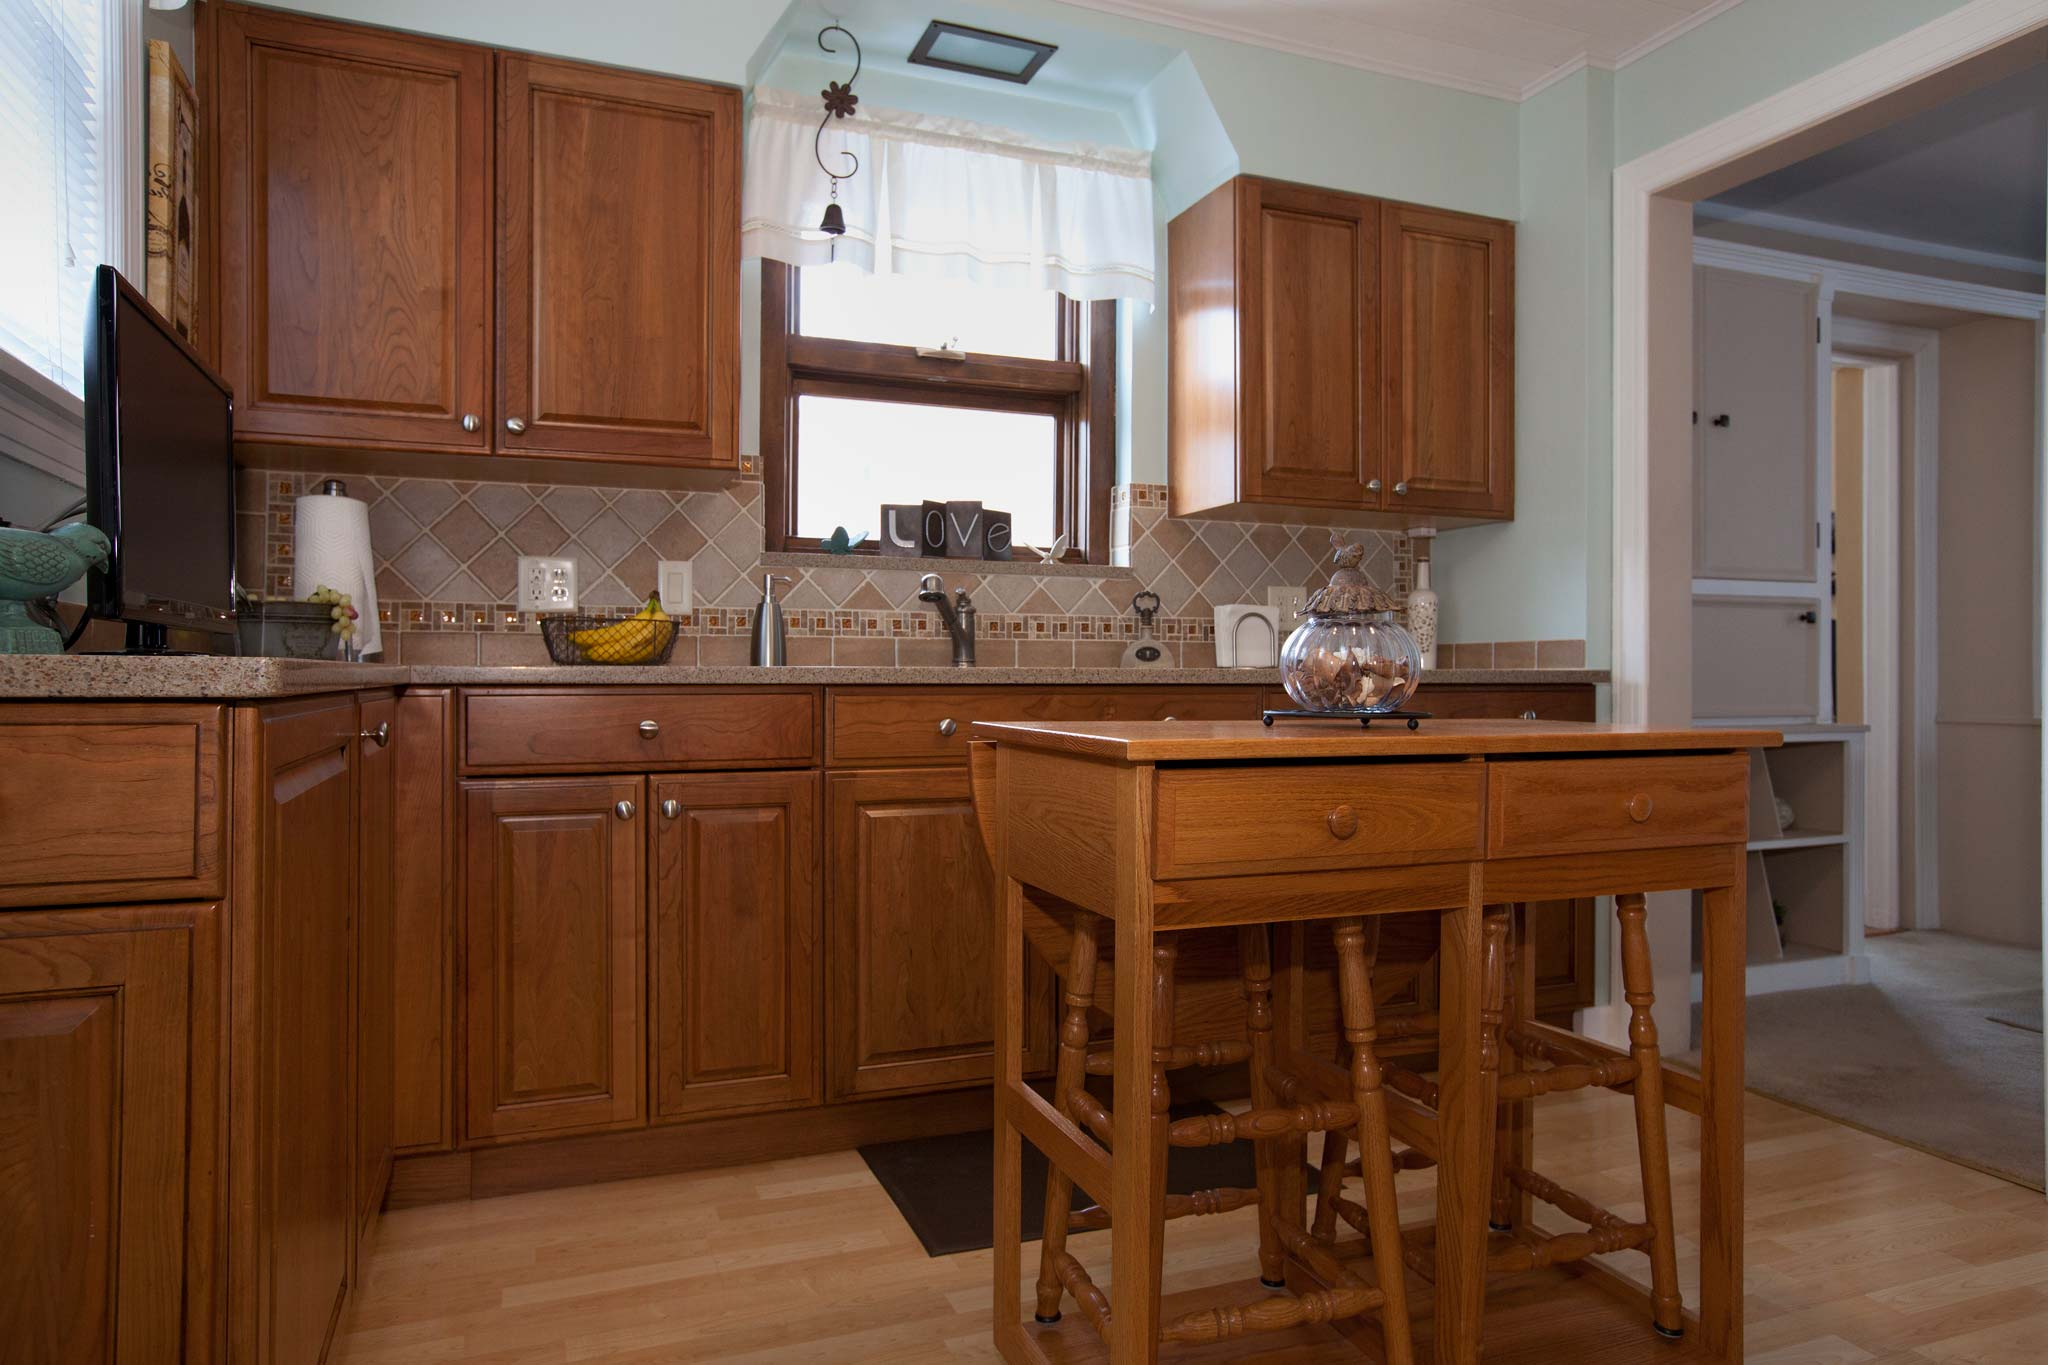 small kitchen elmwood park remodeling a small kitchen OVERVIEW